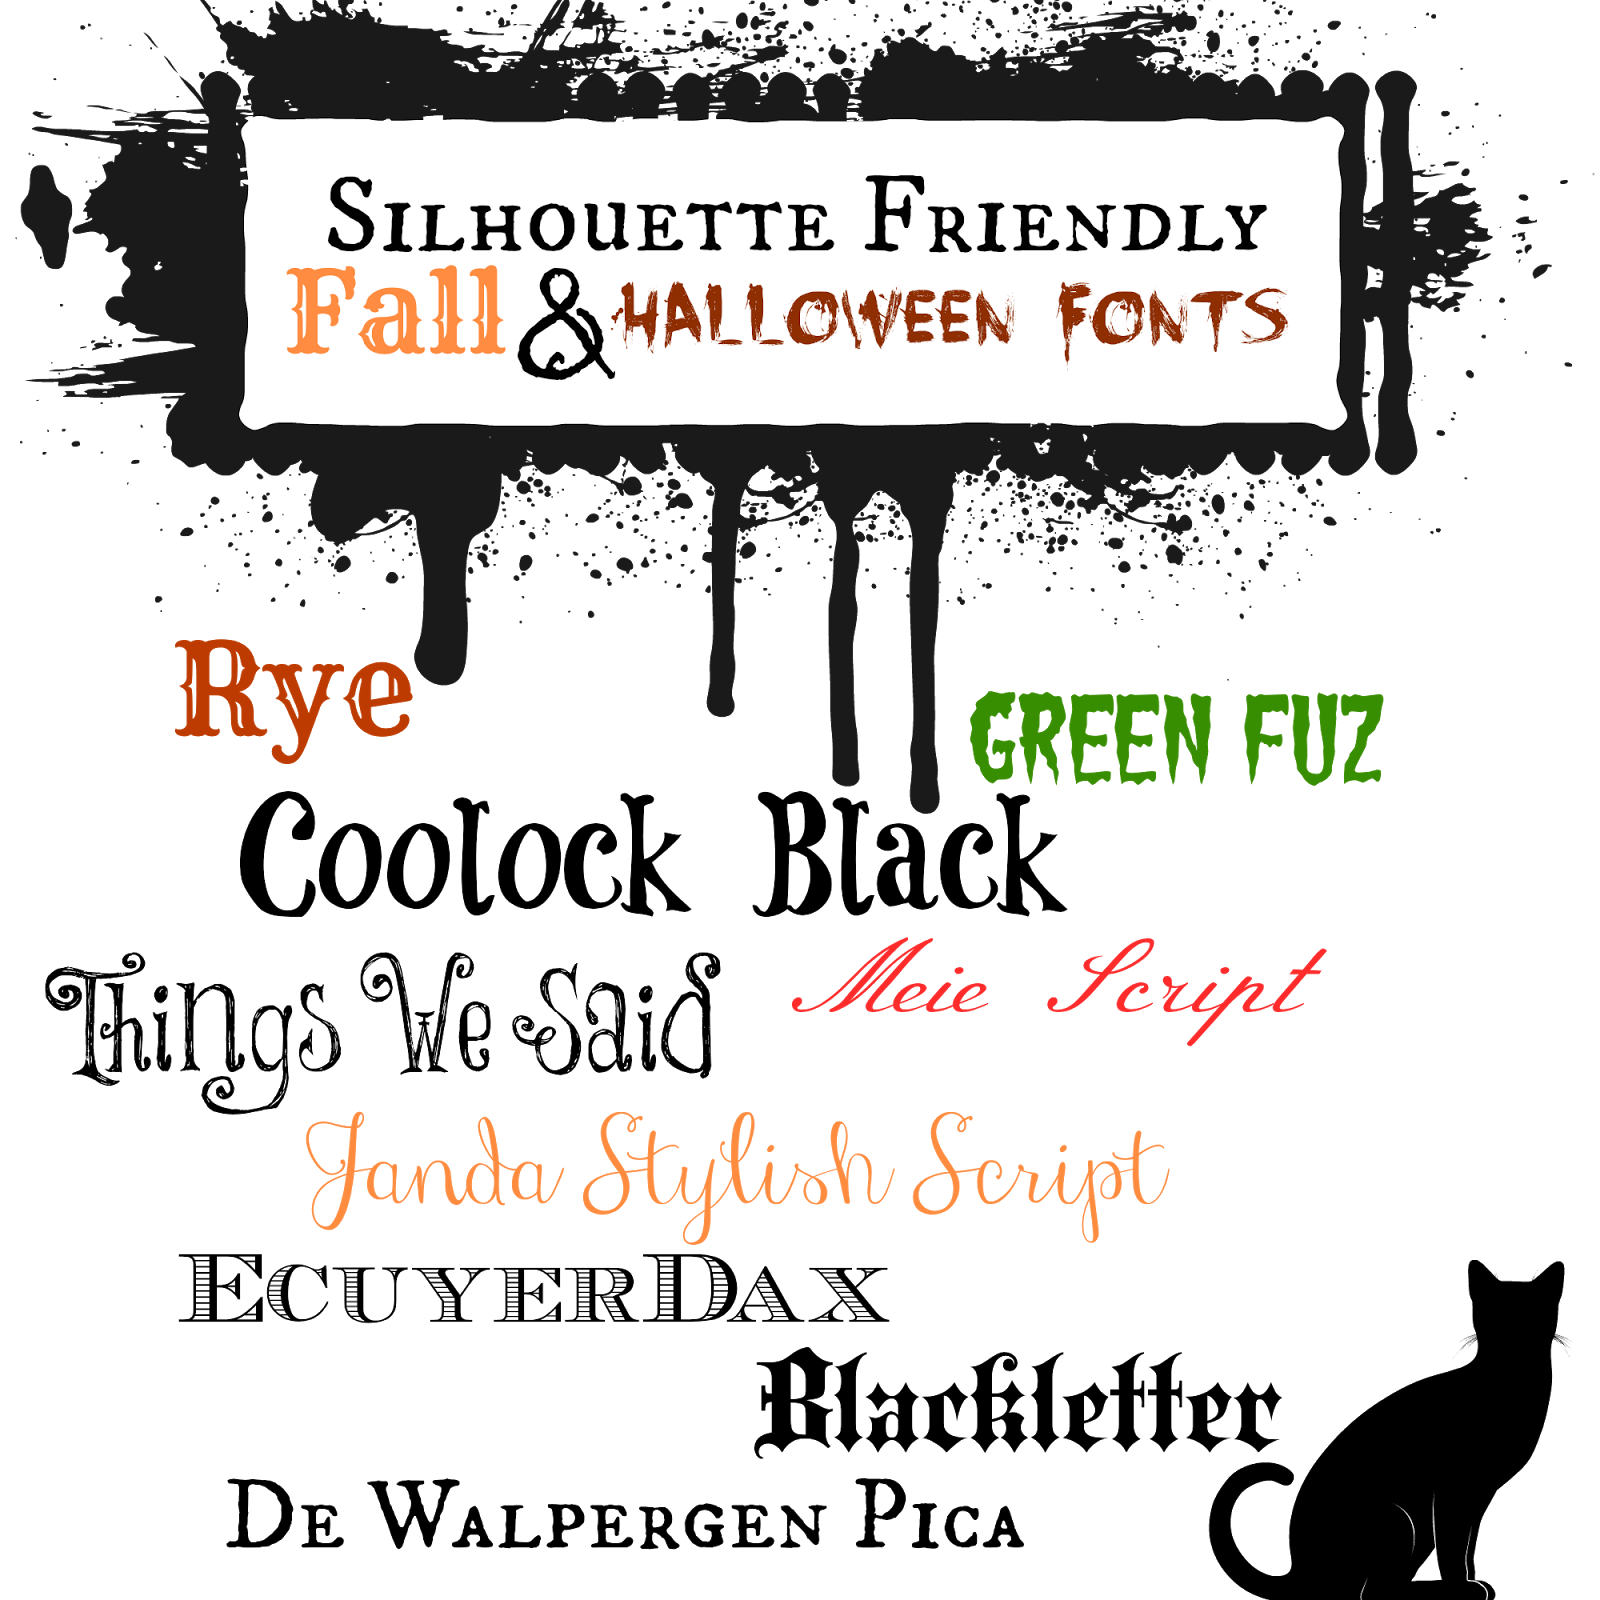 Silhouette, friendly, free, halloween designs, fonts